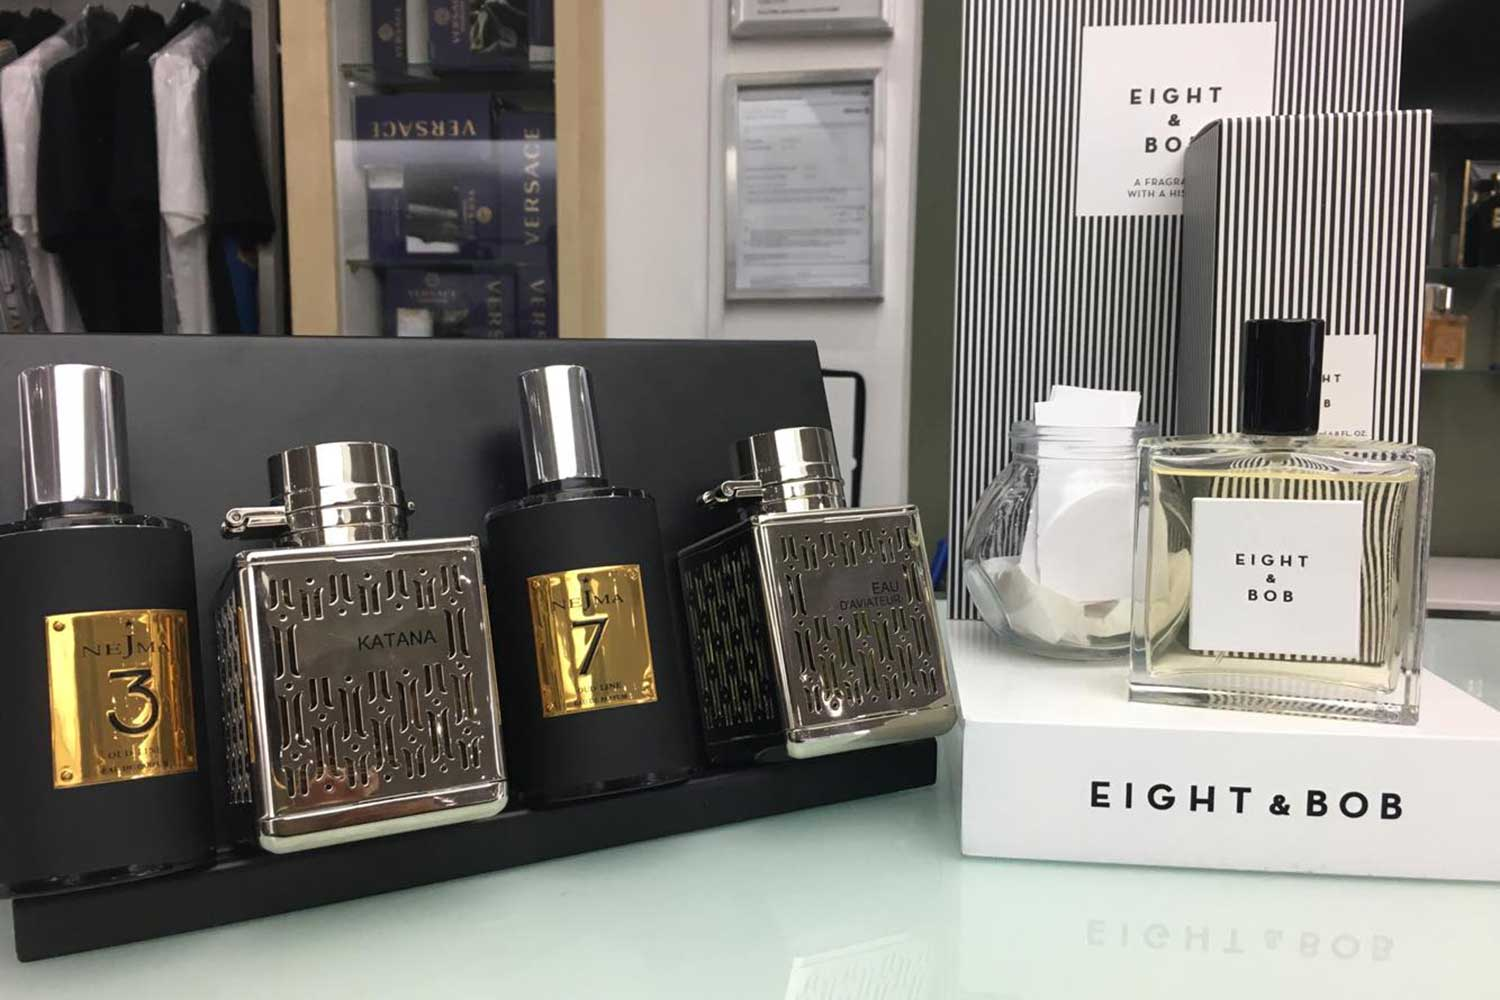 Aftershave at Zee and co on Roman Road